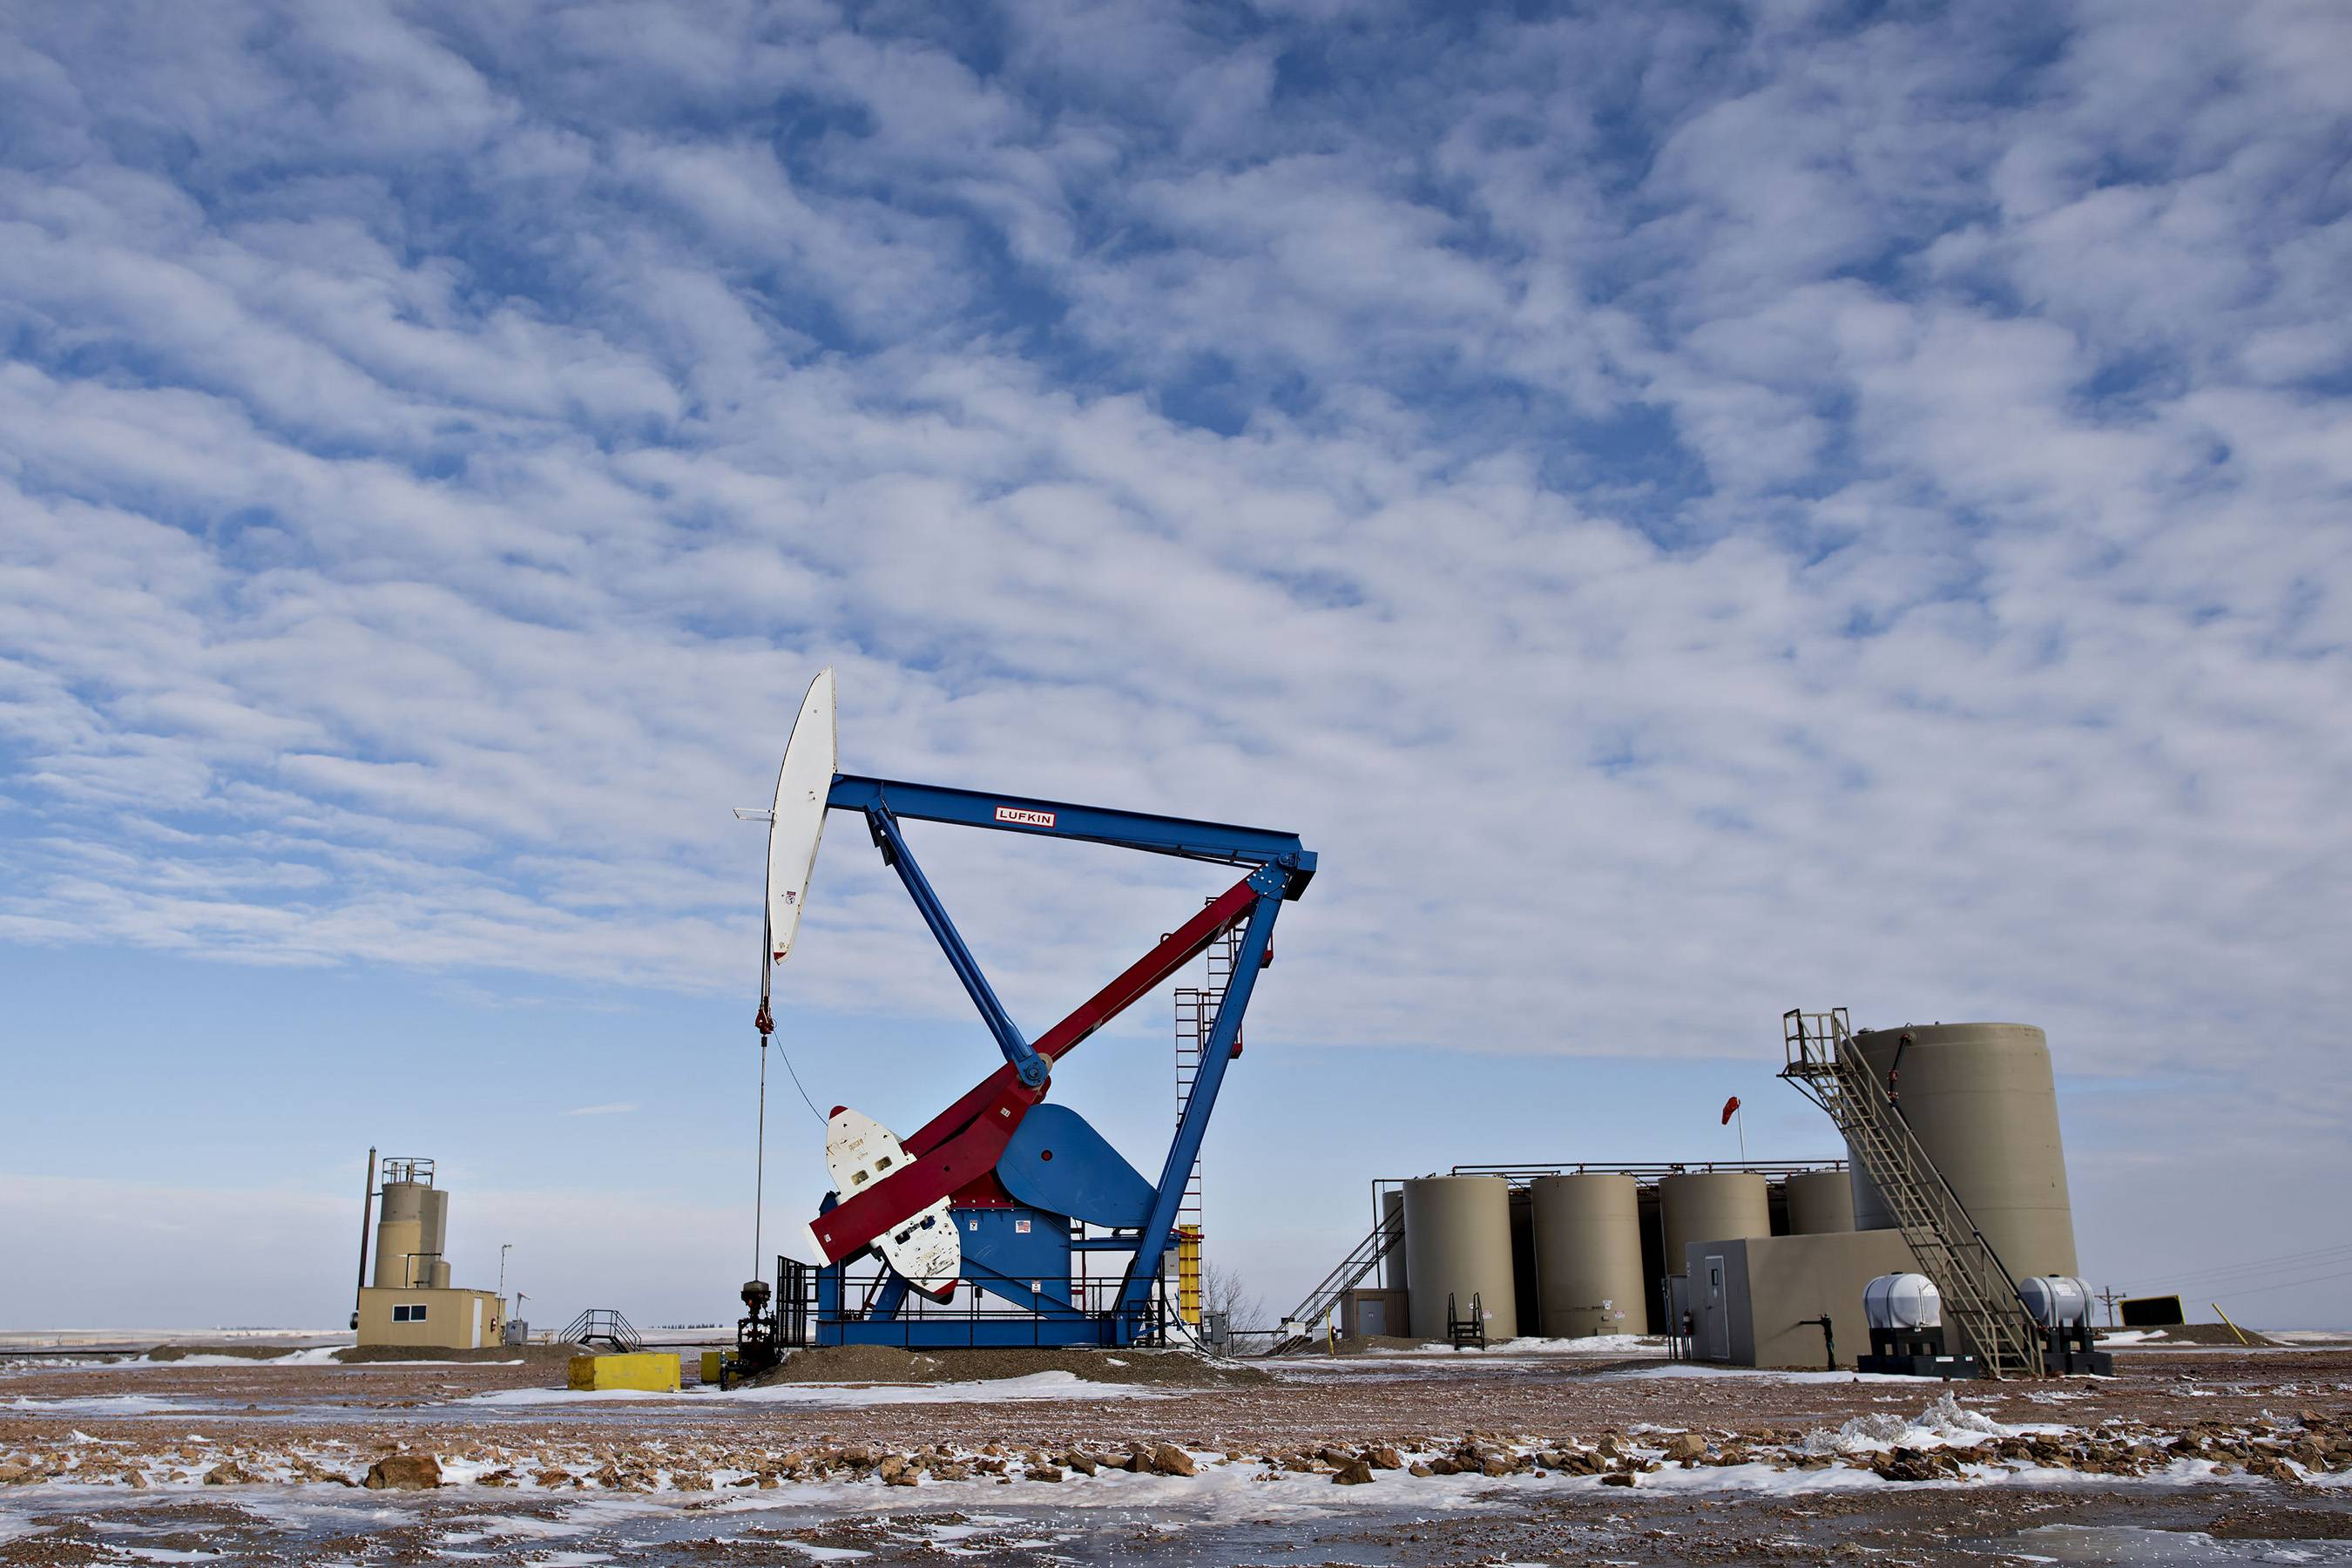 A pumpjack stands near storage containers on the site of an oil well outside Williston, North Dakota. A plunge in global energy prices that has put some North Dakota oil rigs in a deep freeze has yet to chill the state's hiring climate. Brent crude, a benchmark for international oils used by many U.S. refineries, fell $1.58 Thursday to close at $60.05 in London. In other futures trading on the NYMEX, wholesale gasoline fell 1.1 cents to close at $1.708 a gallon.